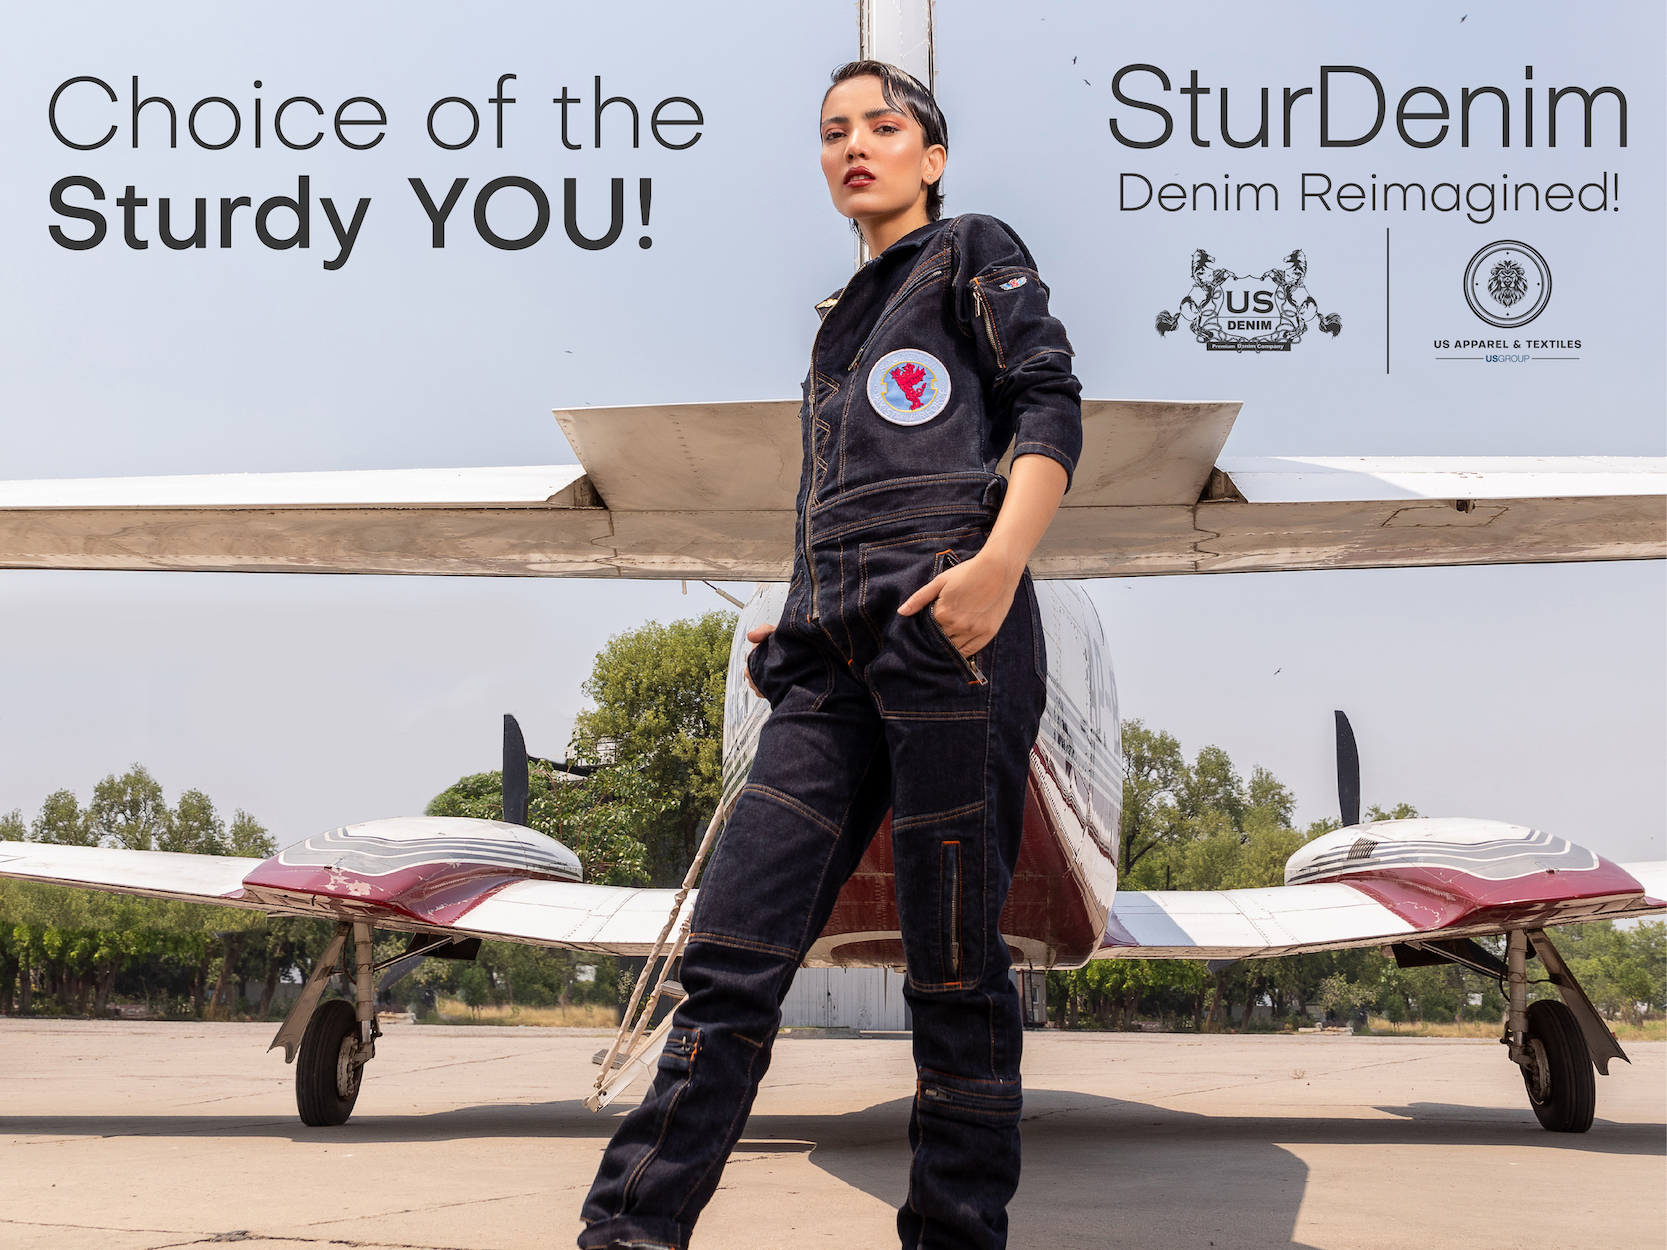 US Denim Mills, part of US Apparel & Textiles in Lahore, Pakistan, is introducing a first-ever workwear collection called STURDENIM in its seasonless line.